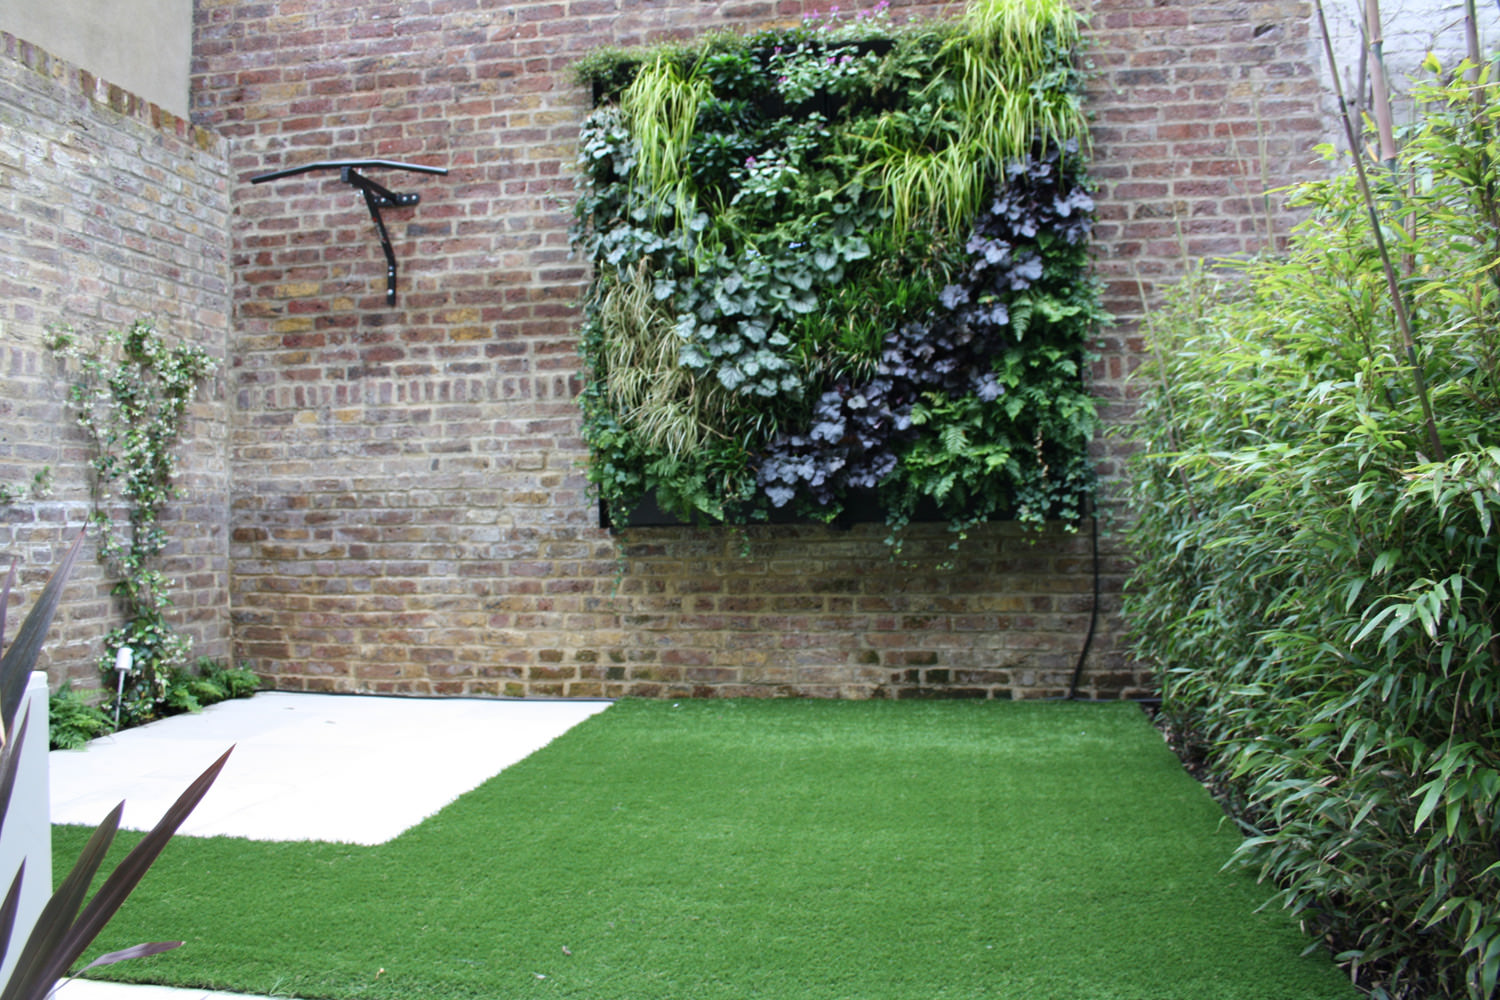 Top 10 london garden designs garden club london - Garden ideas london ...